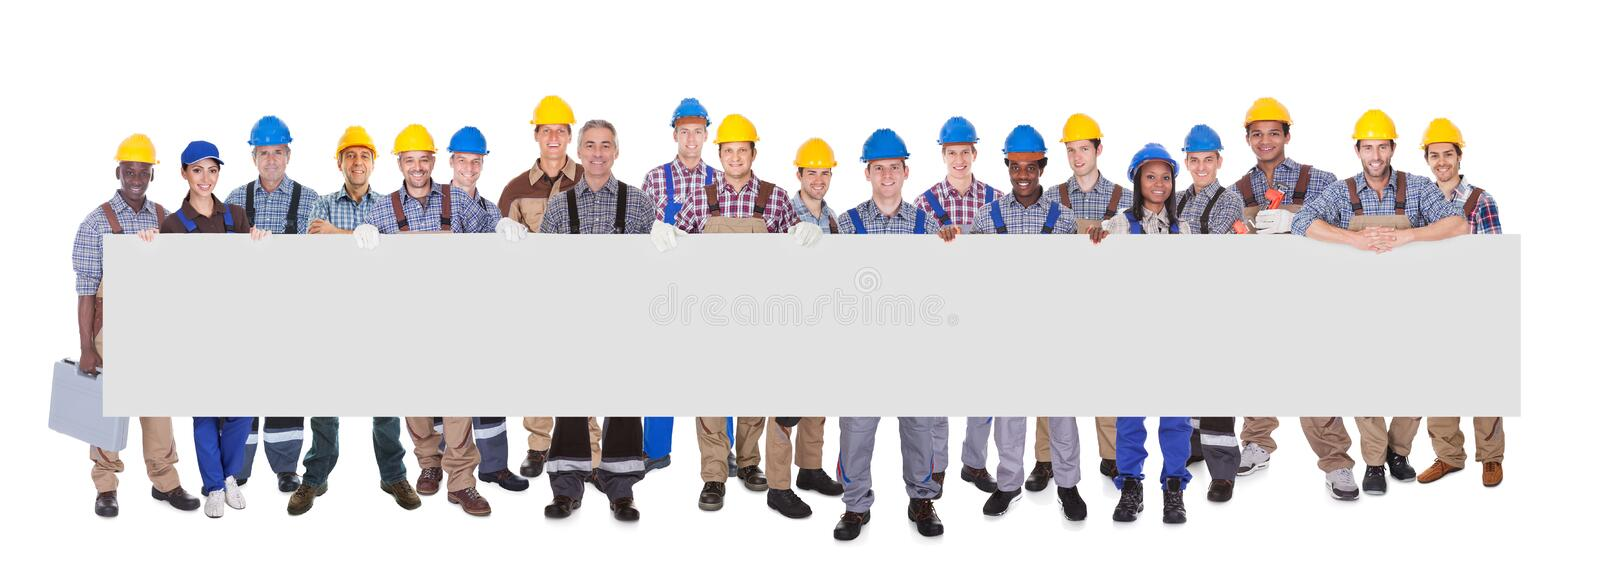 Multiethnic manual workers holding blank banner royalty free stock photo